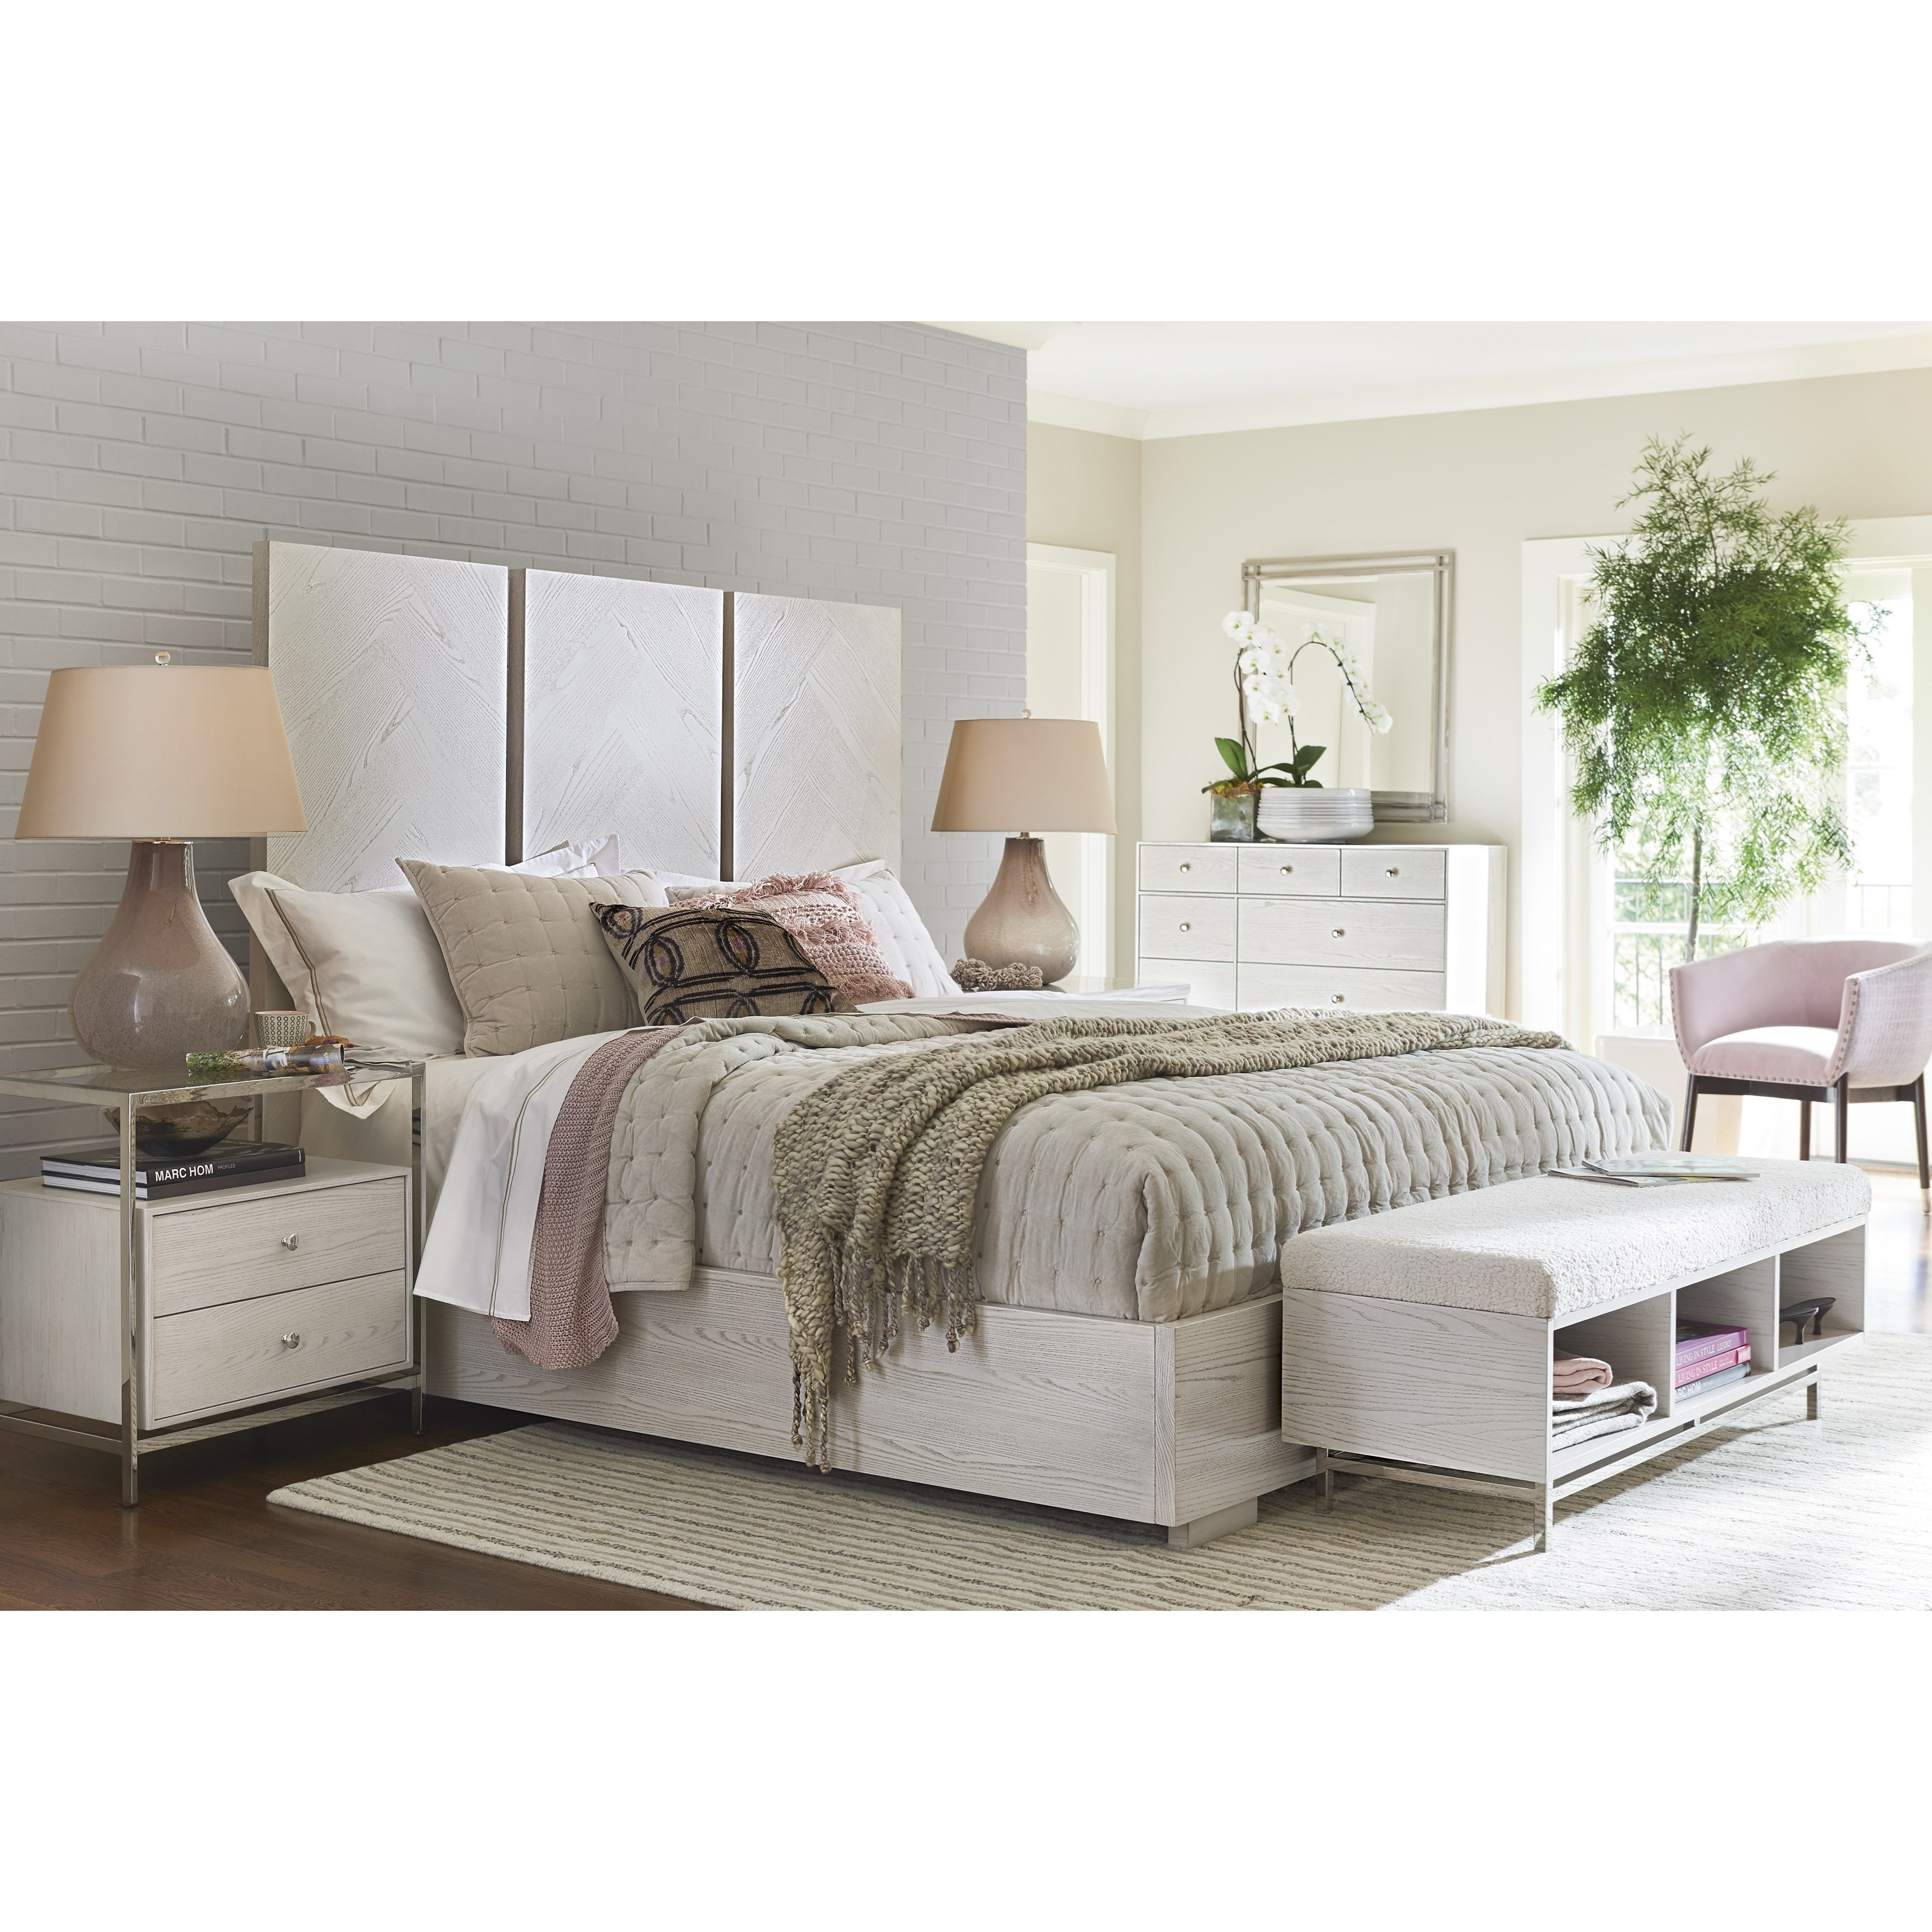 Paradox Queen Bedroom Group by Universal at Baer's Furniture